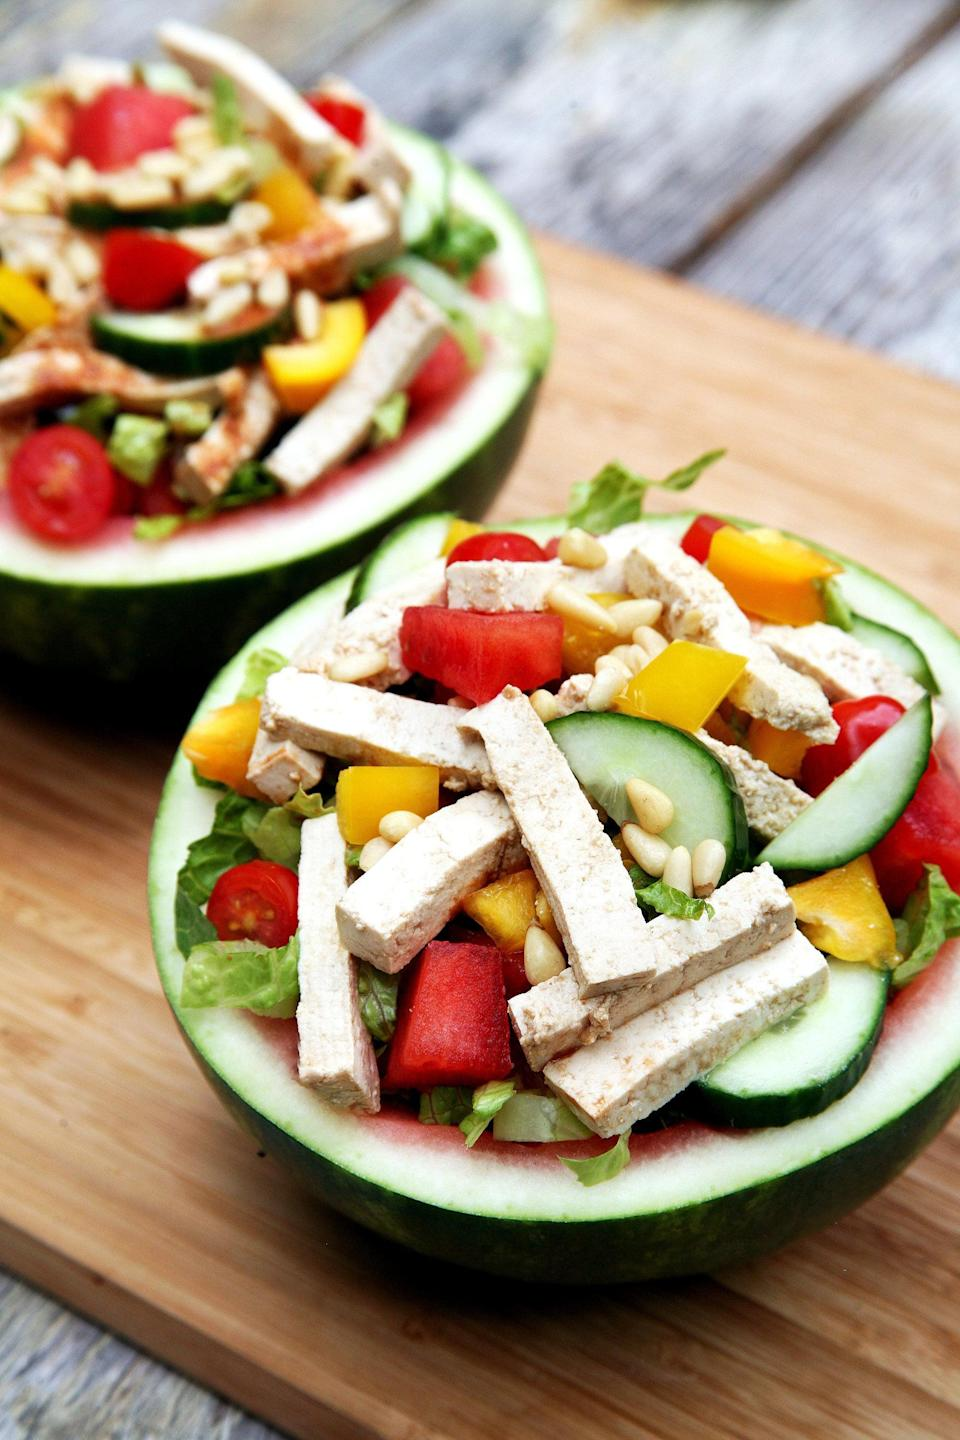 "<p>Colorful and perfect for summer, this delicious veggie-packed salad is best served in a hollowed-out watermelon half! The scooped-out flesh (which is your source of healthy carbs) will be put to good use in the dressing, with chunks mixed in alongside the lettuce, bell peppers, cucumbers, and tofu.</p> <p><strong>Get the recipe:</strong> <a href=""https://www.popsugar.com/fitness/Salad-Served-Watermelon-37755599"" class=""link rapid-noclick-resp"" rel=""nofollow noopener"" target=""_blank"" data-ylk=""slk:watermelon-bowl salad"">watermelon-bowl salad</a></p>"